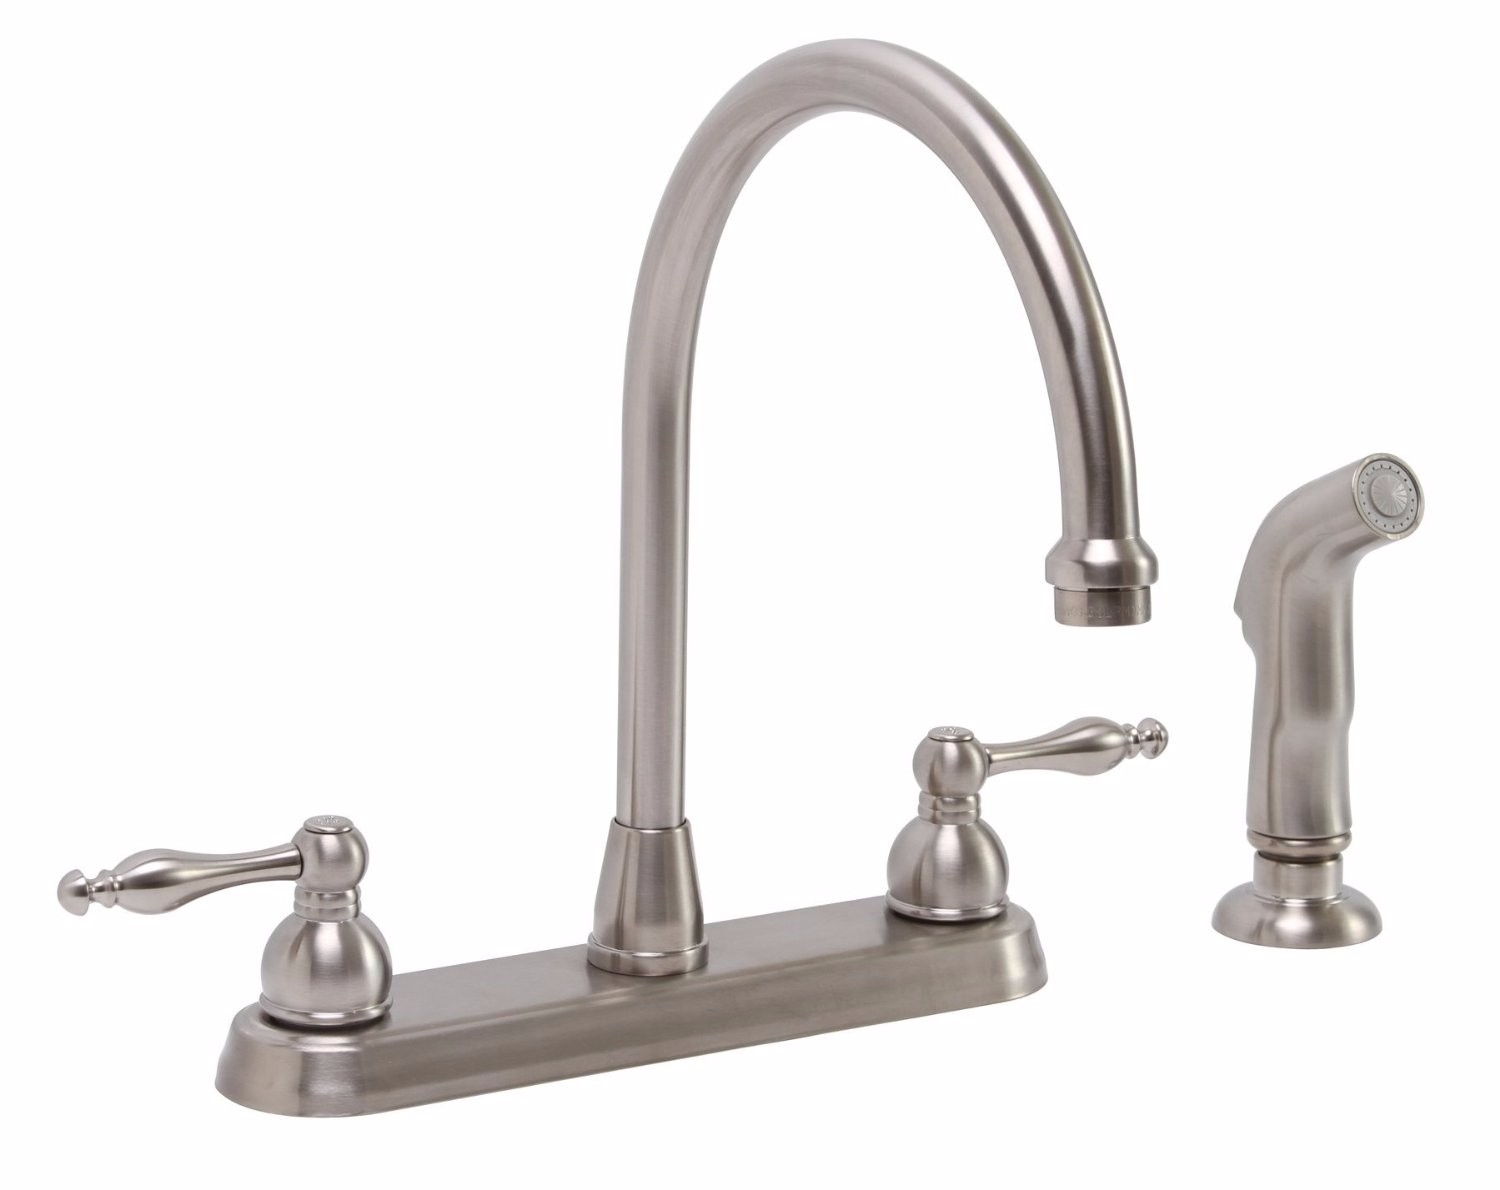 Ideas, premier brushed nickel kitchen faucet with sprayer premier brushed nickel kitchen faucet with sprayer premier 119262 wellington two handle kitchen faucets pvd brushed 1500 x 1190 jpeg.